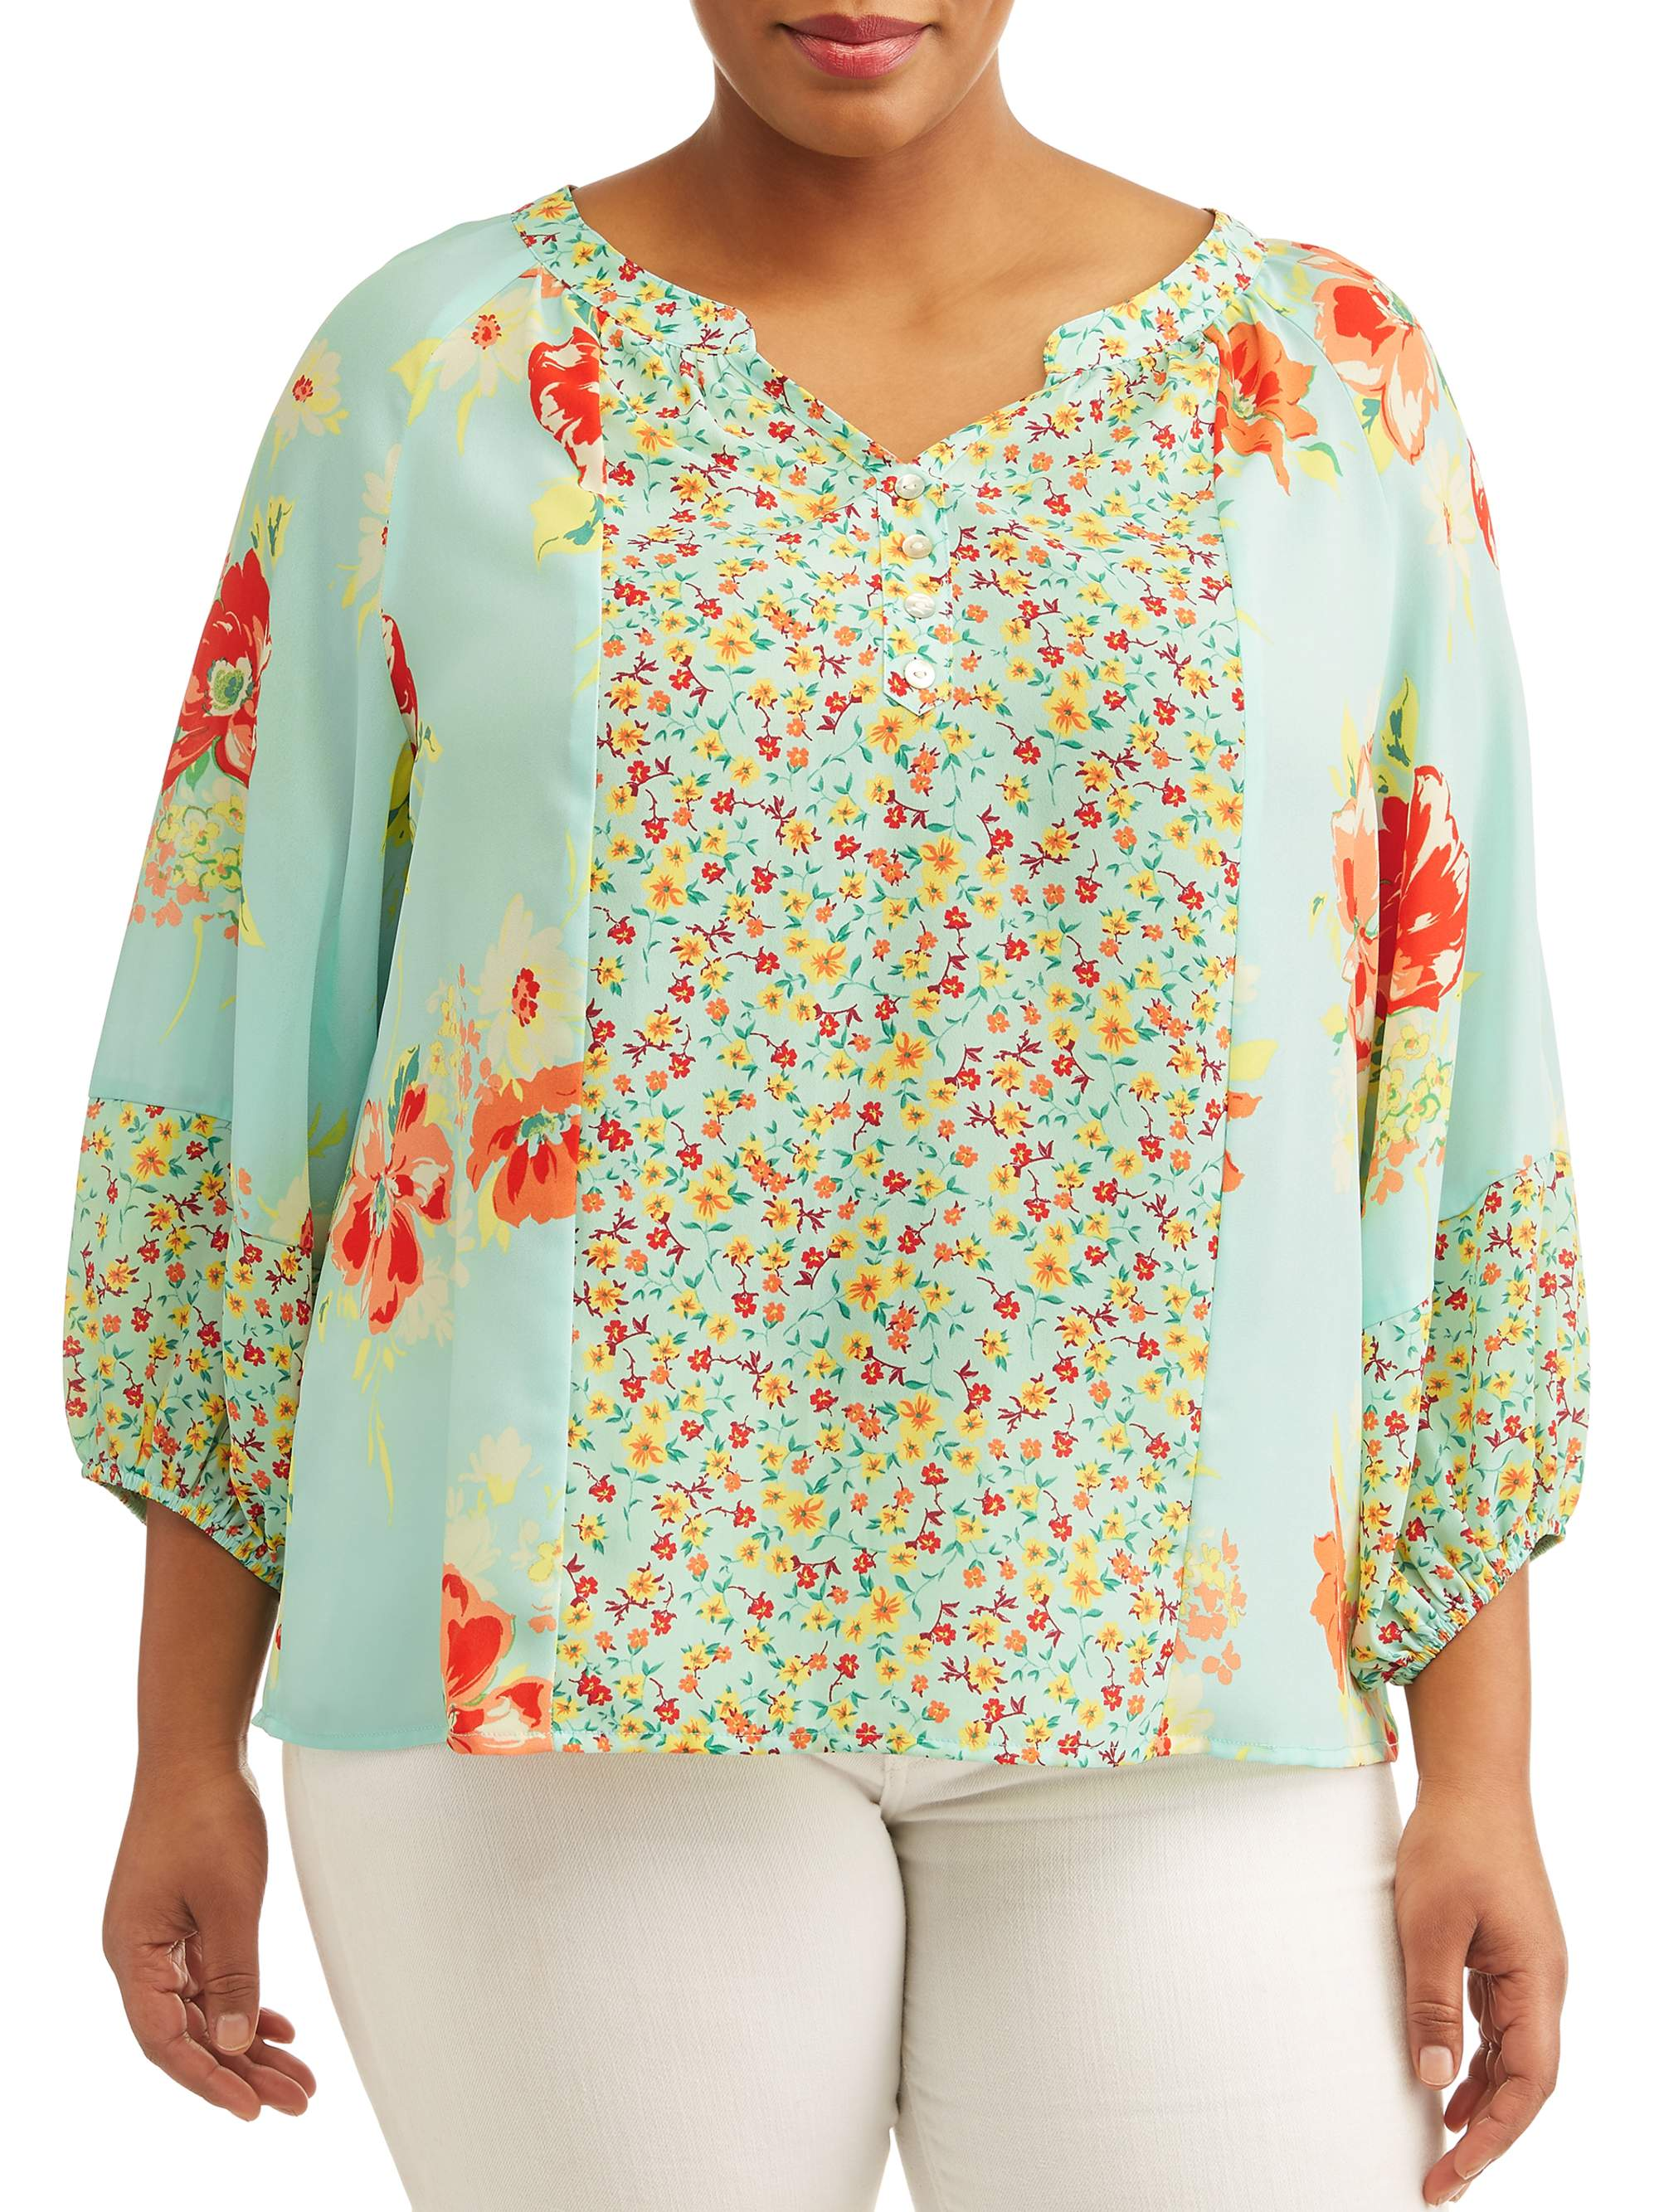 Women's Plus Sized Peasant Floral Printed Blouse